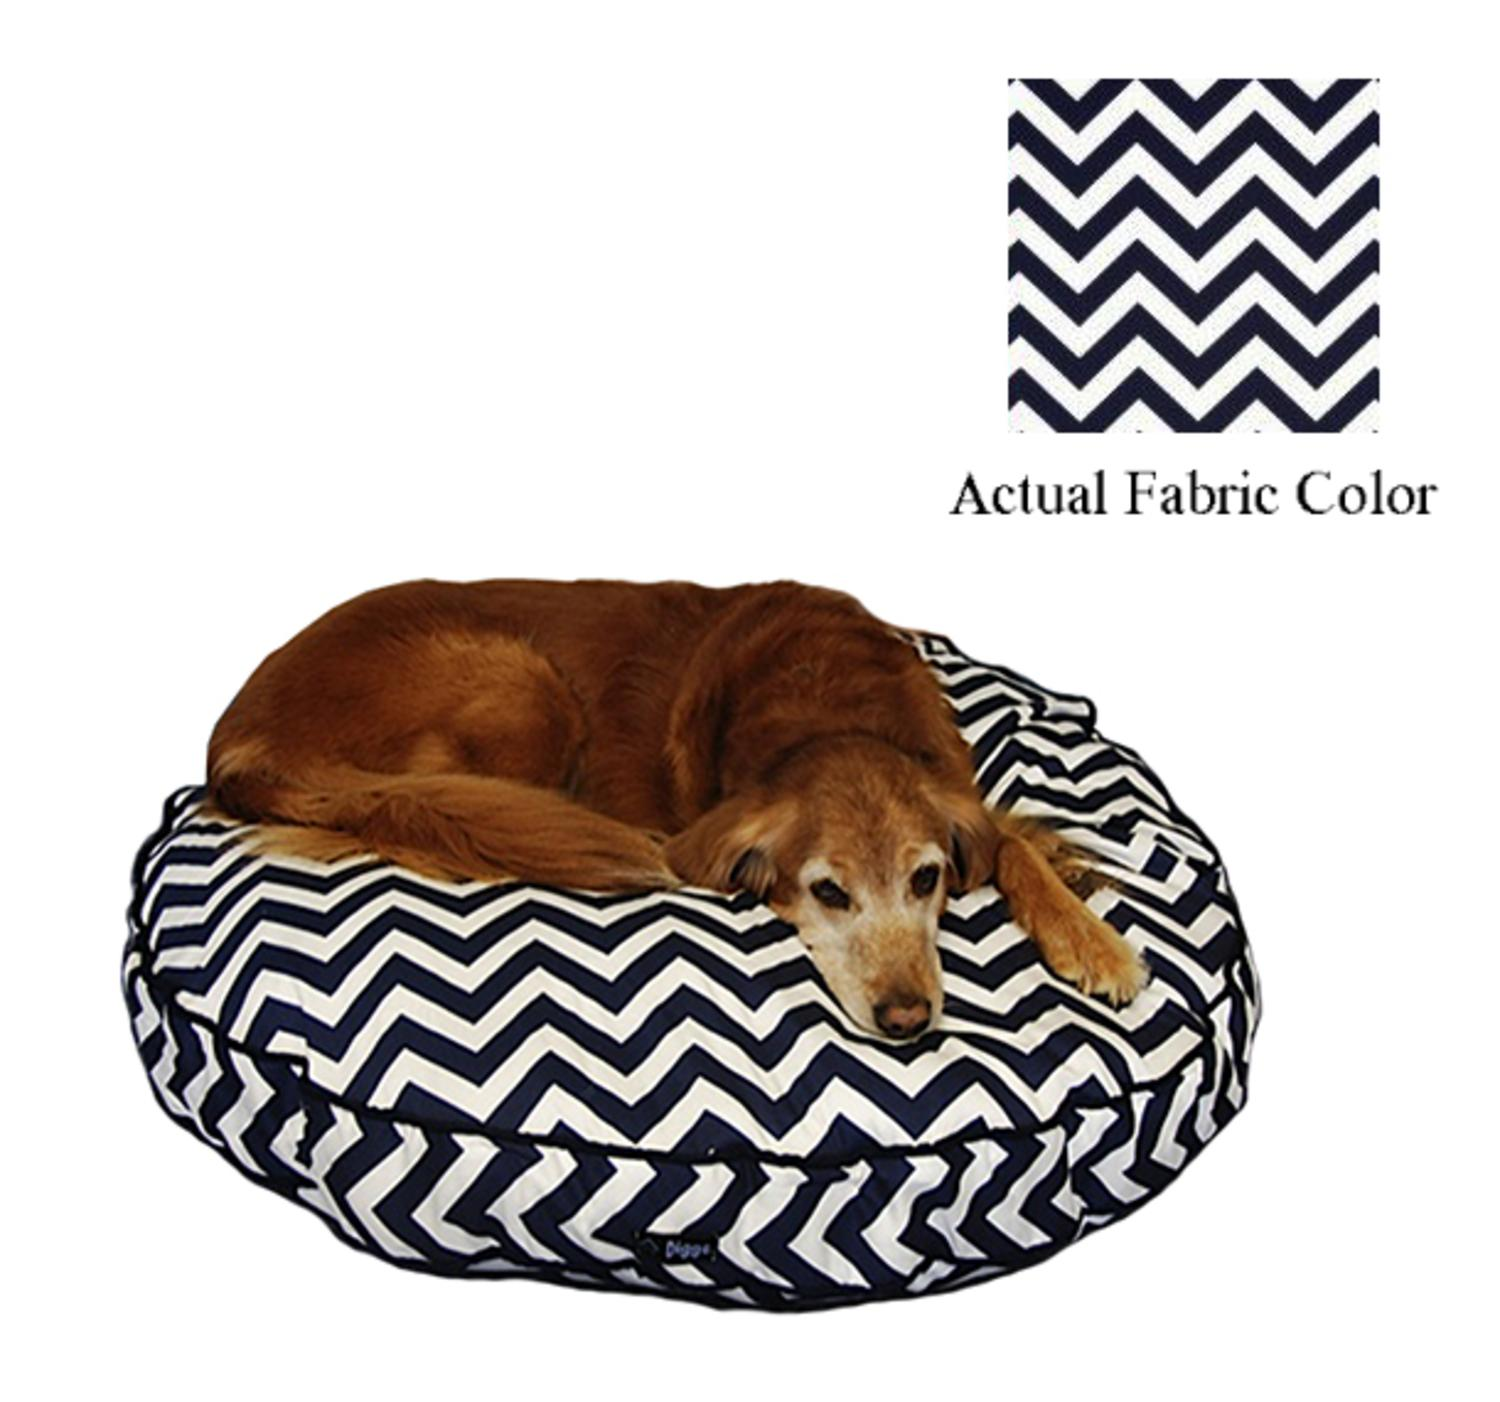 Navy and White Chevron Printed Deluxe Round Pet Dog Bed - Large